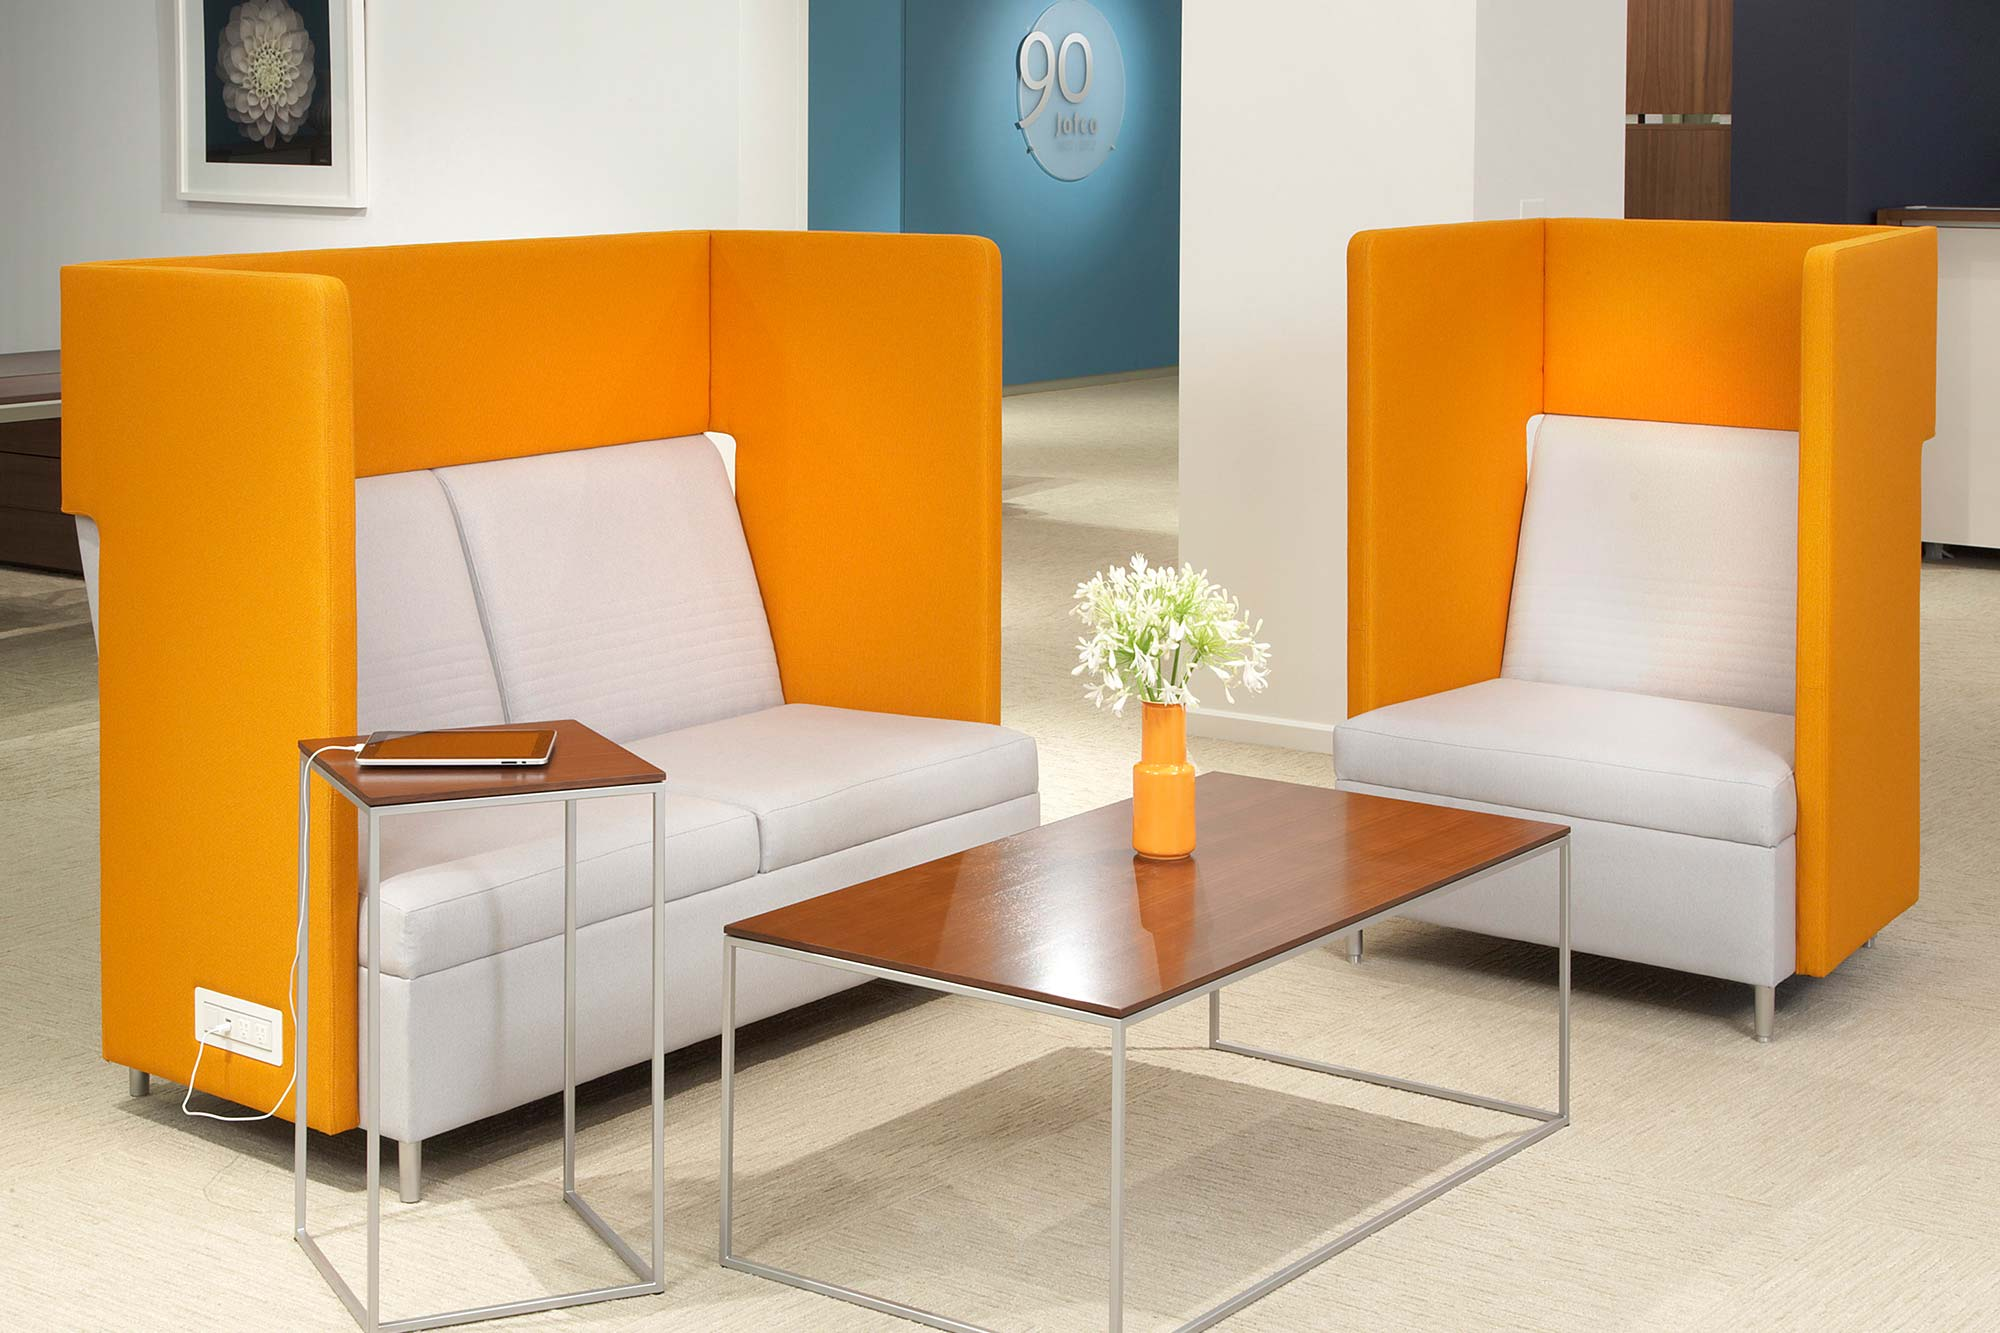 Bright colors and inventive shapes and materials help bring fun back into office furniture.